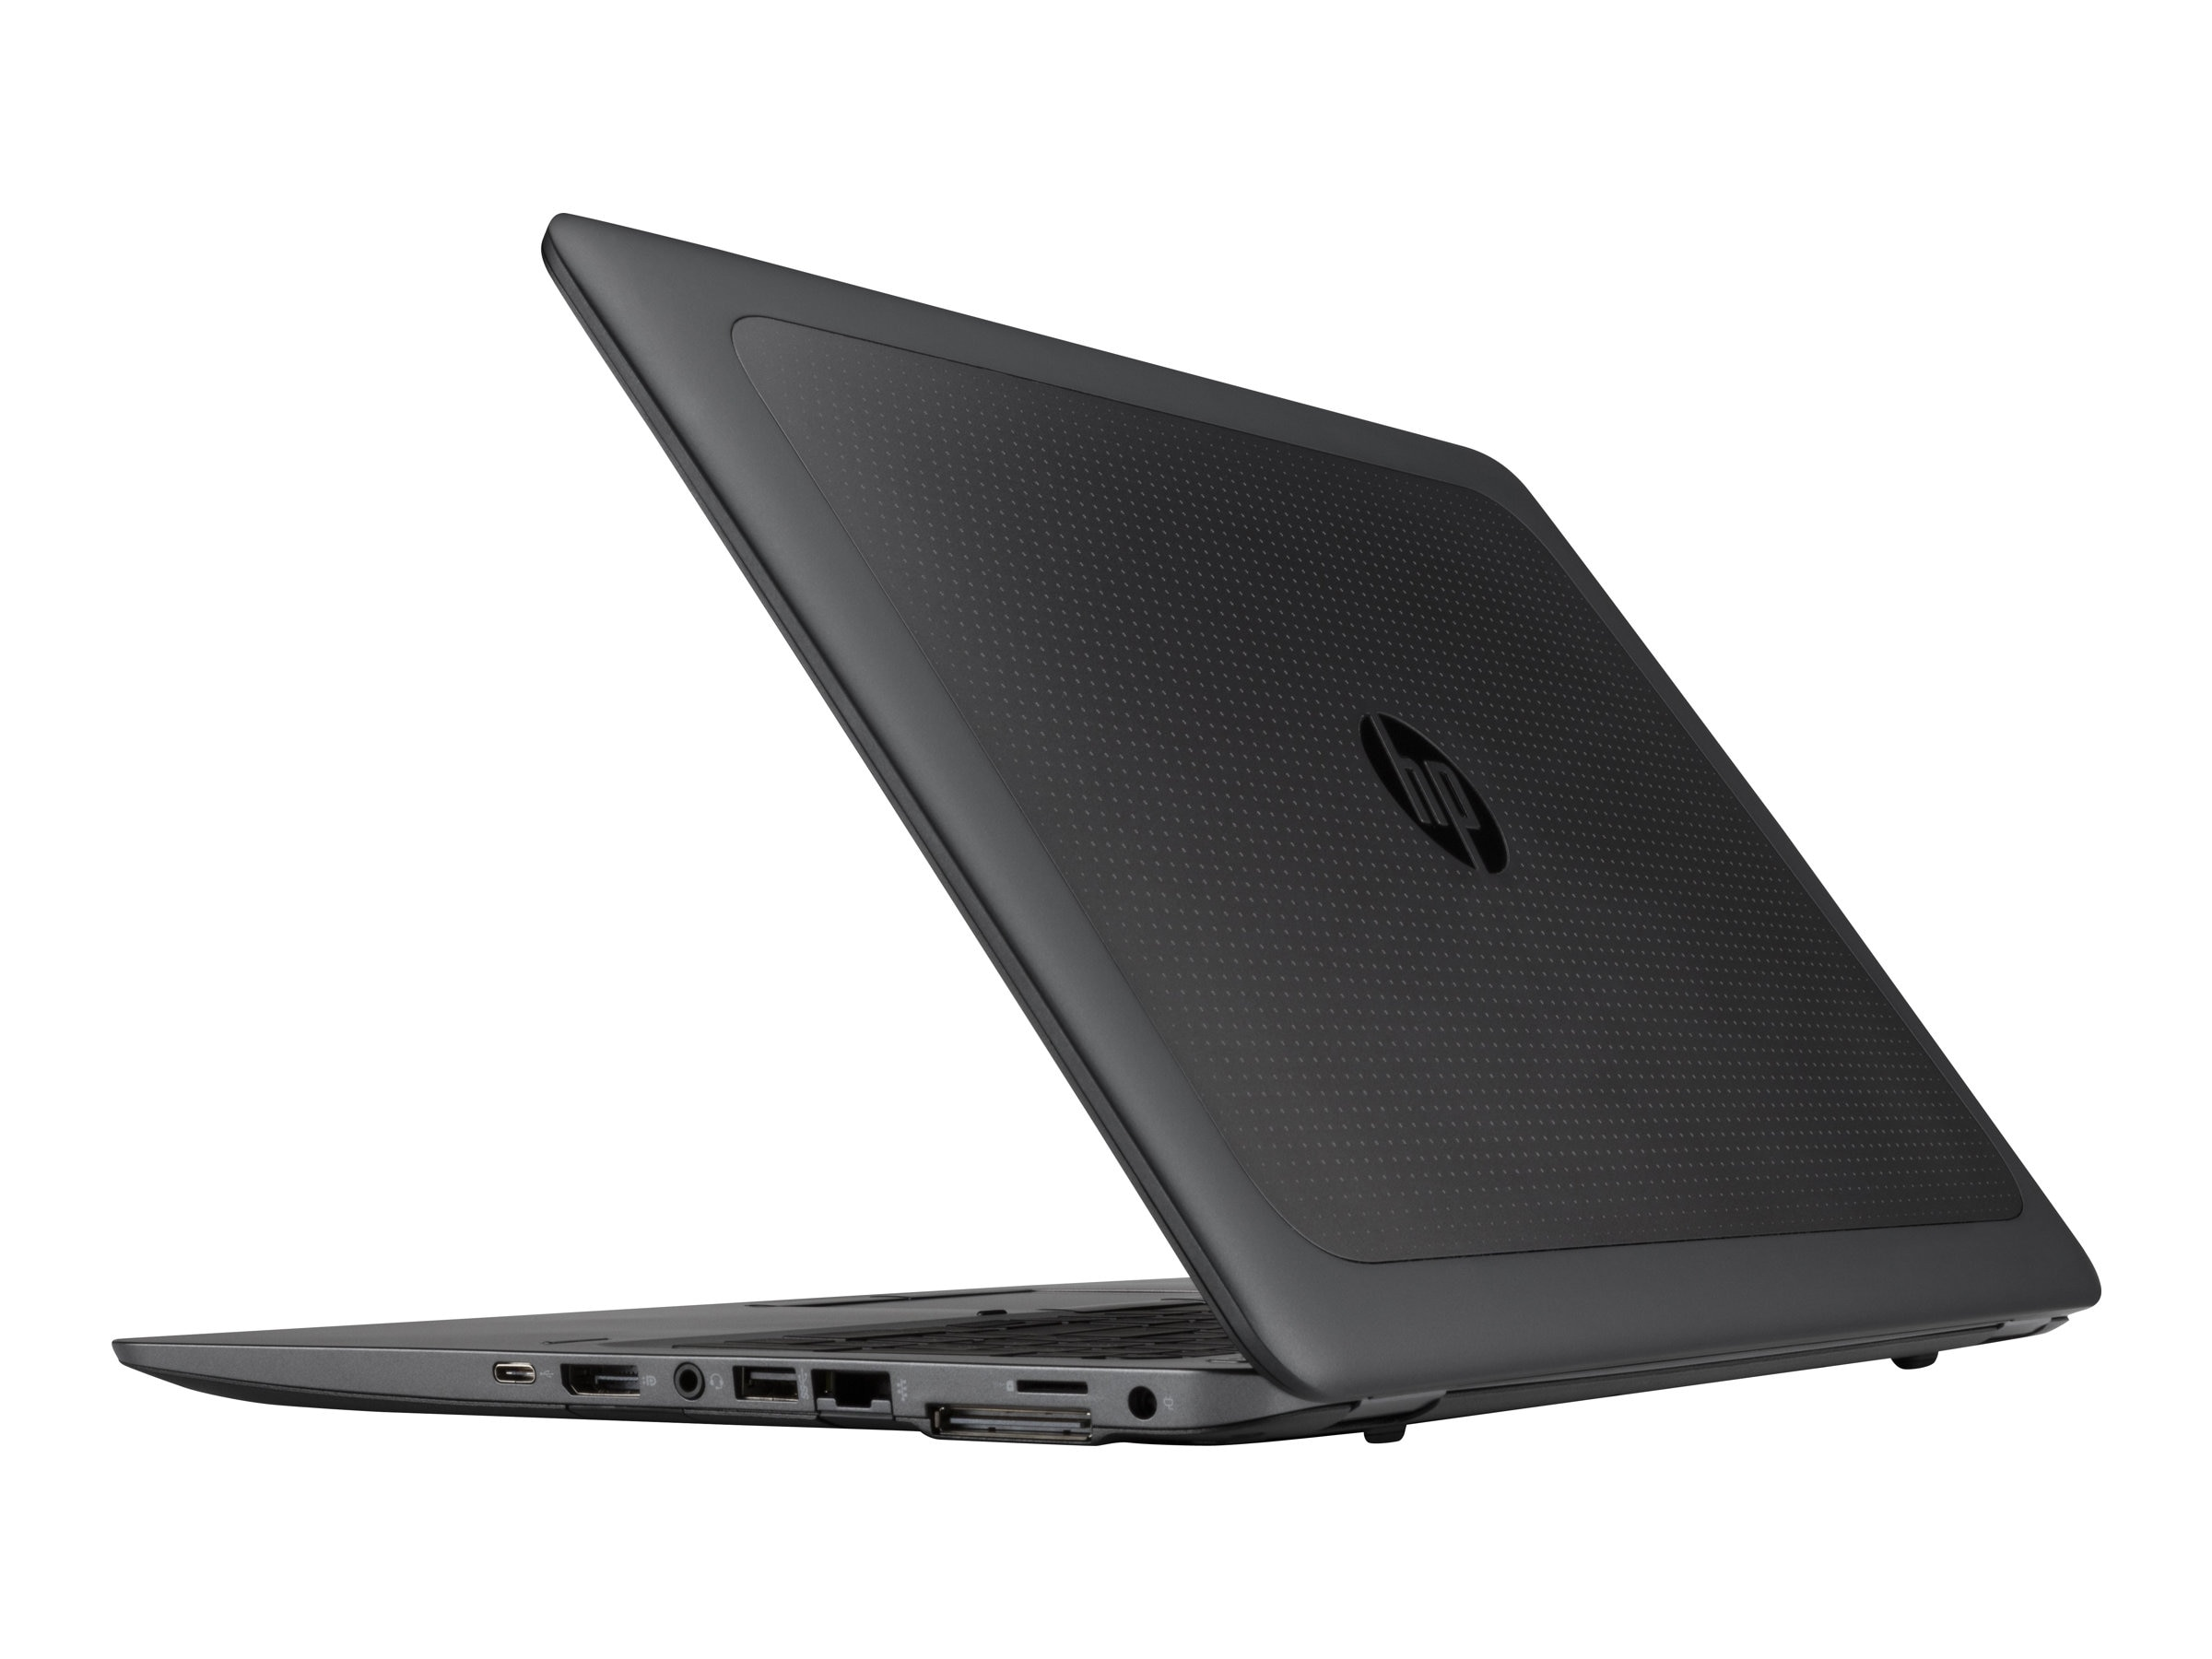 HP ZBook 15U Core i7 2.6GHz 8GB 256GB SSD W7-W10P64, V1P50UT#ABA